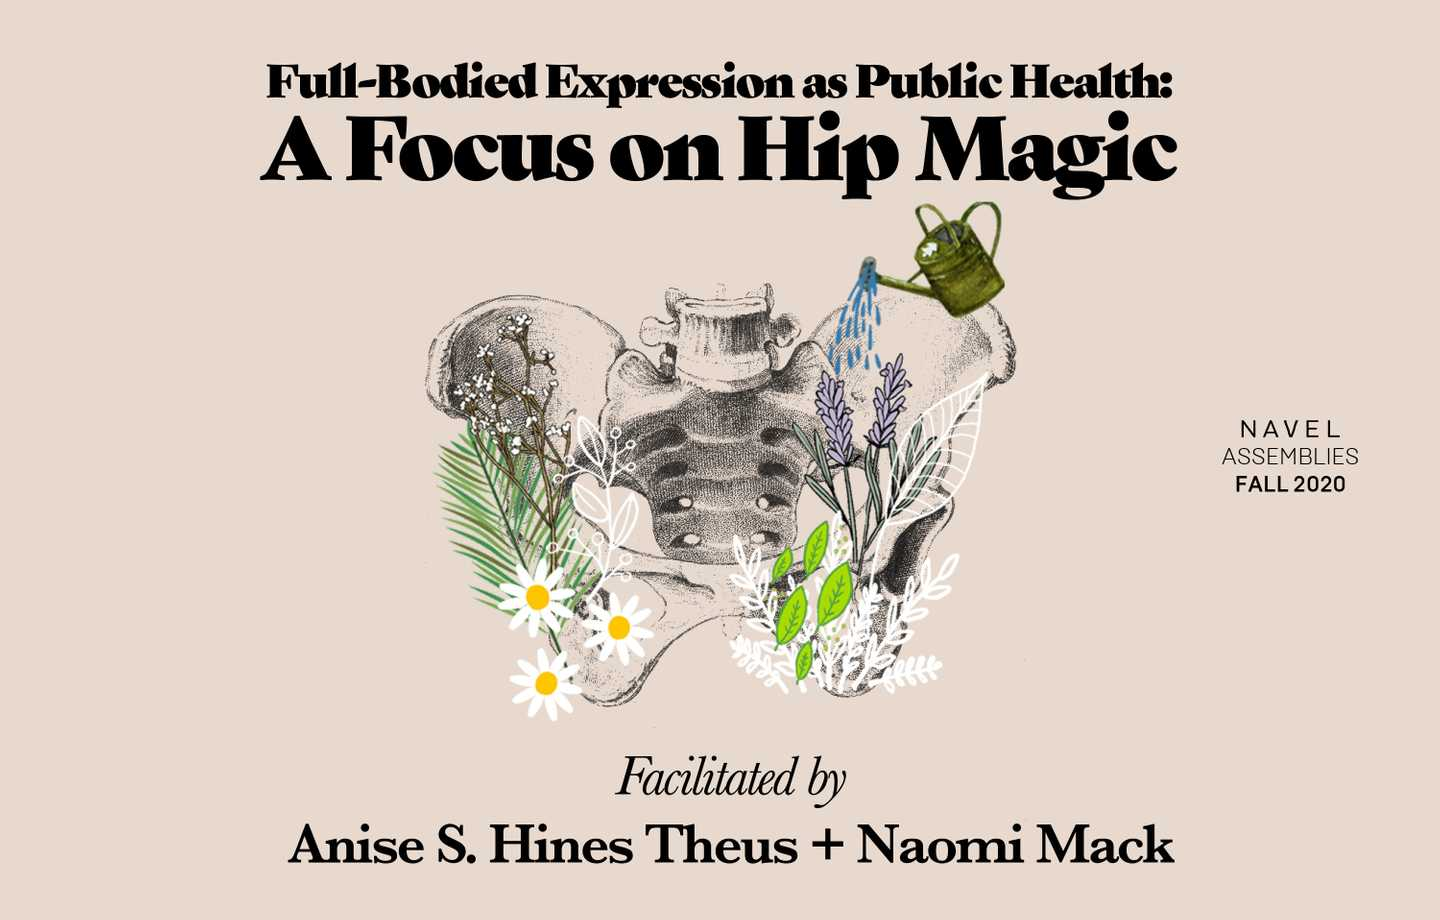 full bodied expression as public health a focus on hip magic final web copy